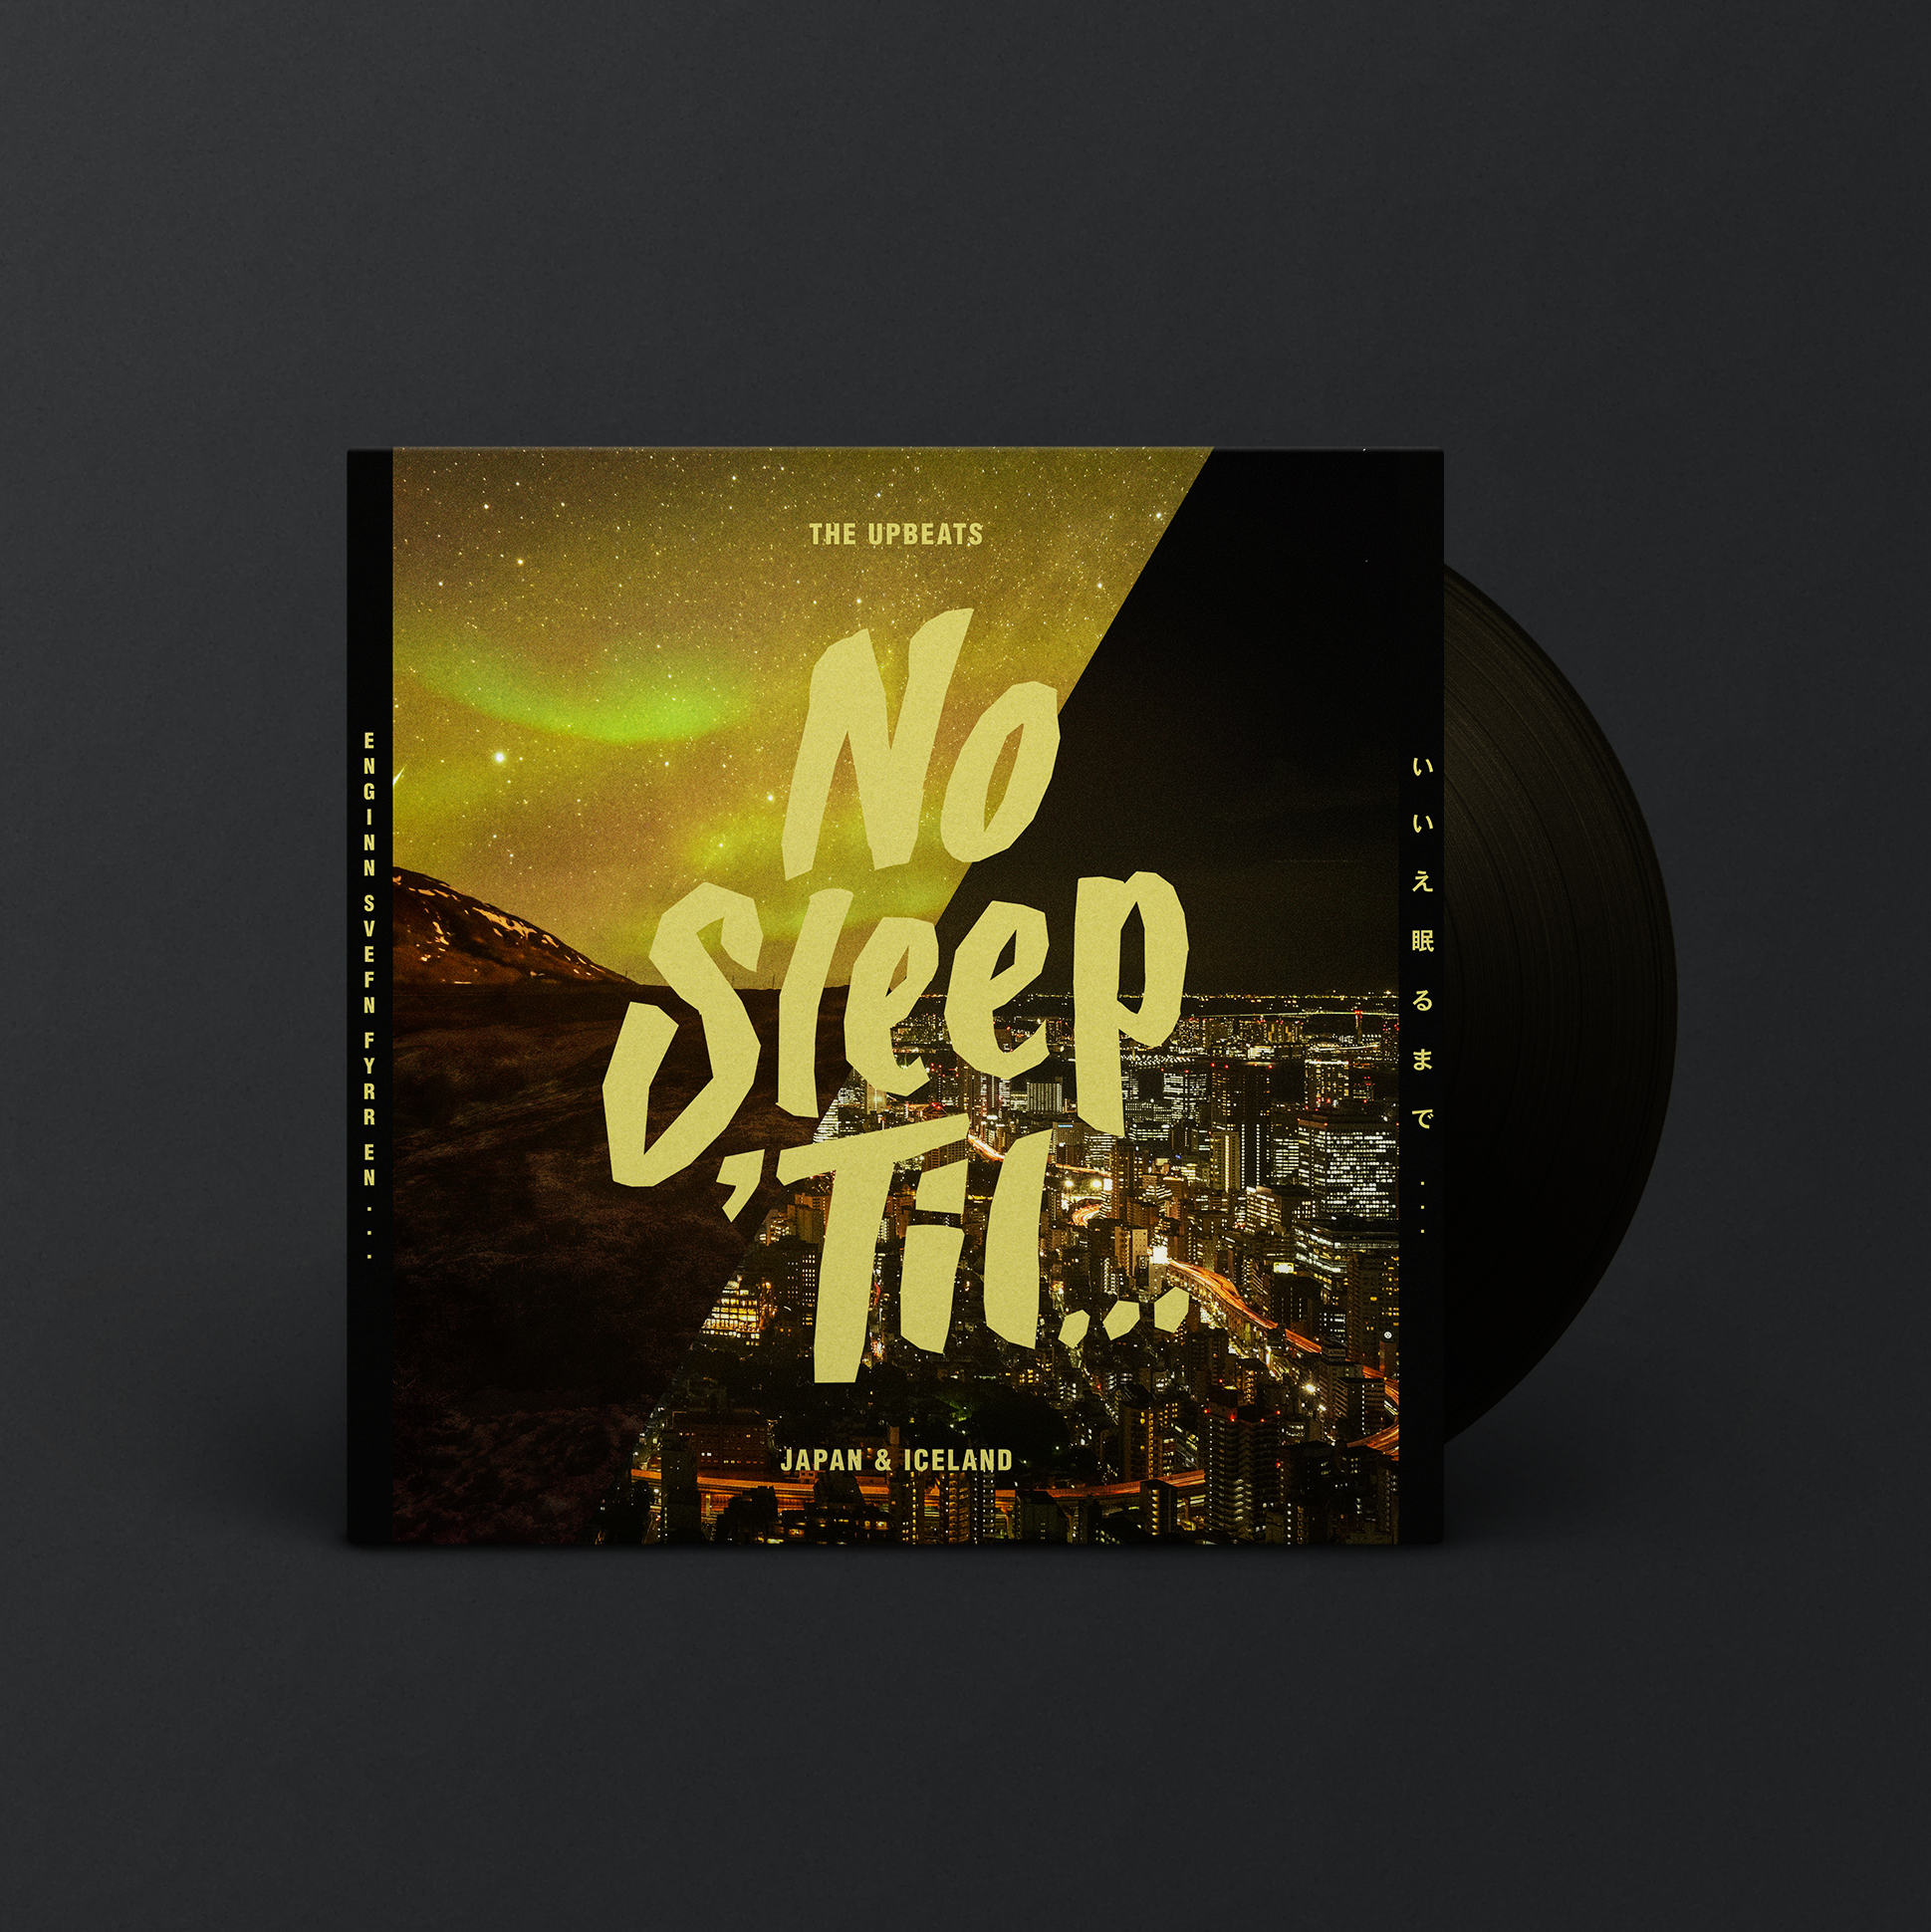 No Sleep 'Til... Japan & Iceland - Digital, Vinyl & Tee Black